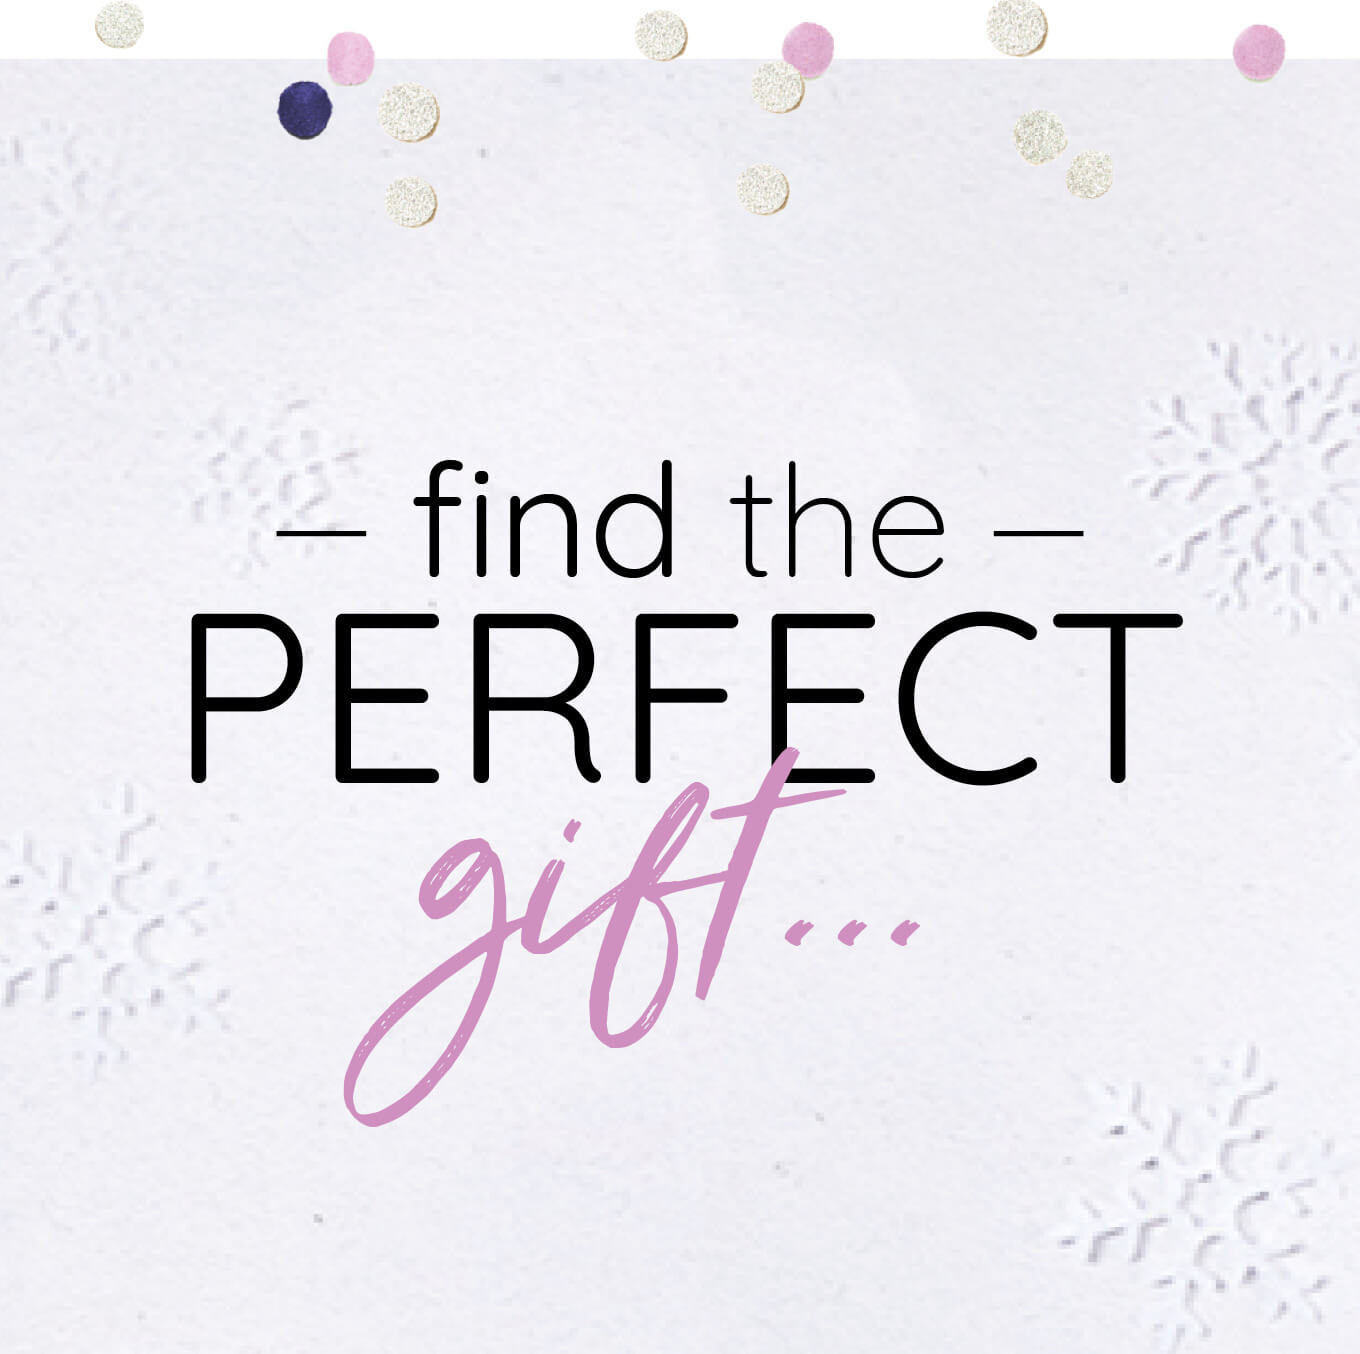 up to 50% off their Christmas wishlists